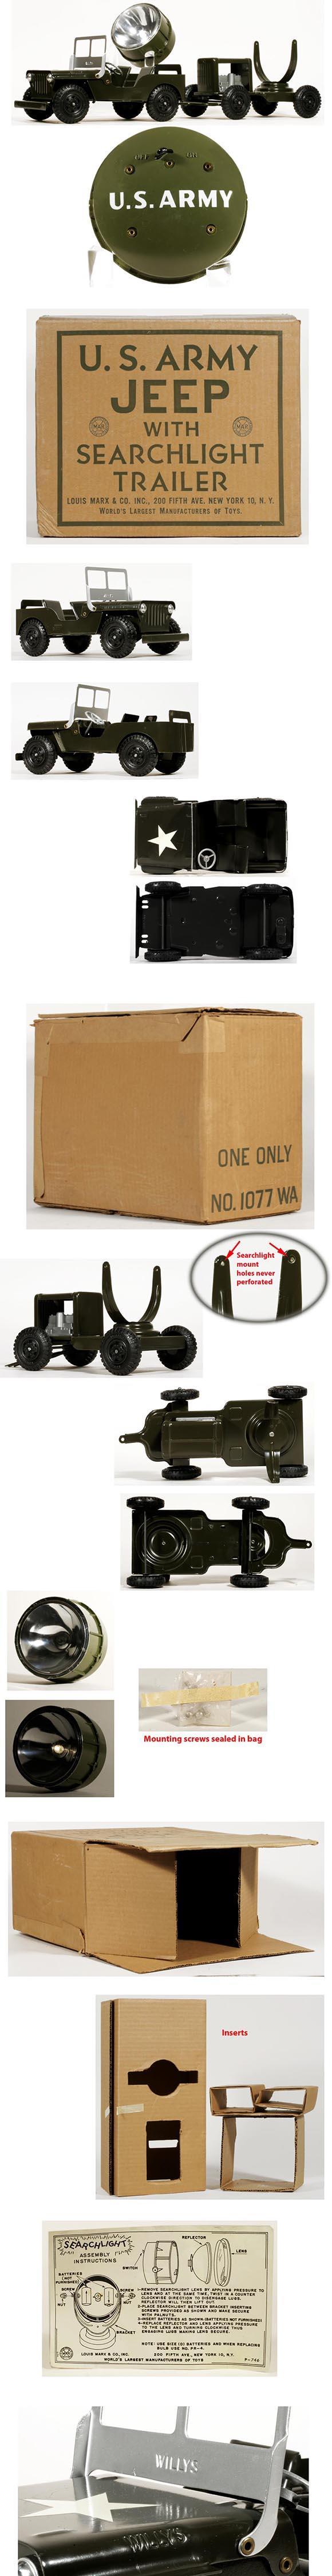 1957 Marx US Army Jeep & Searchlight Trailer in Original Box